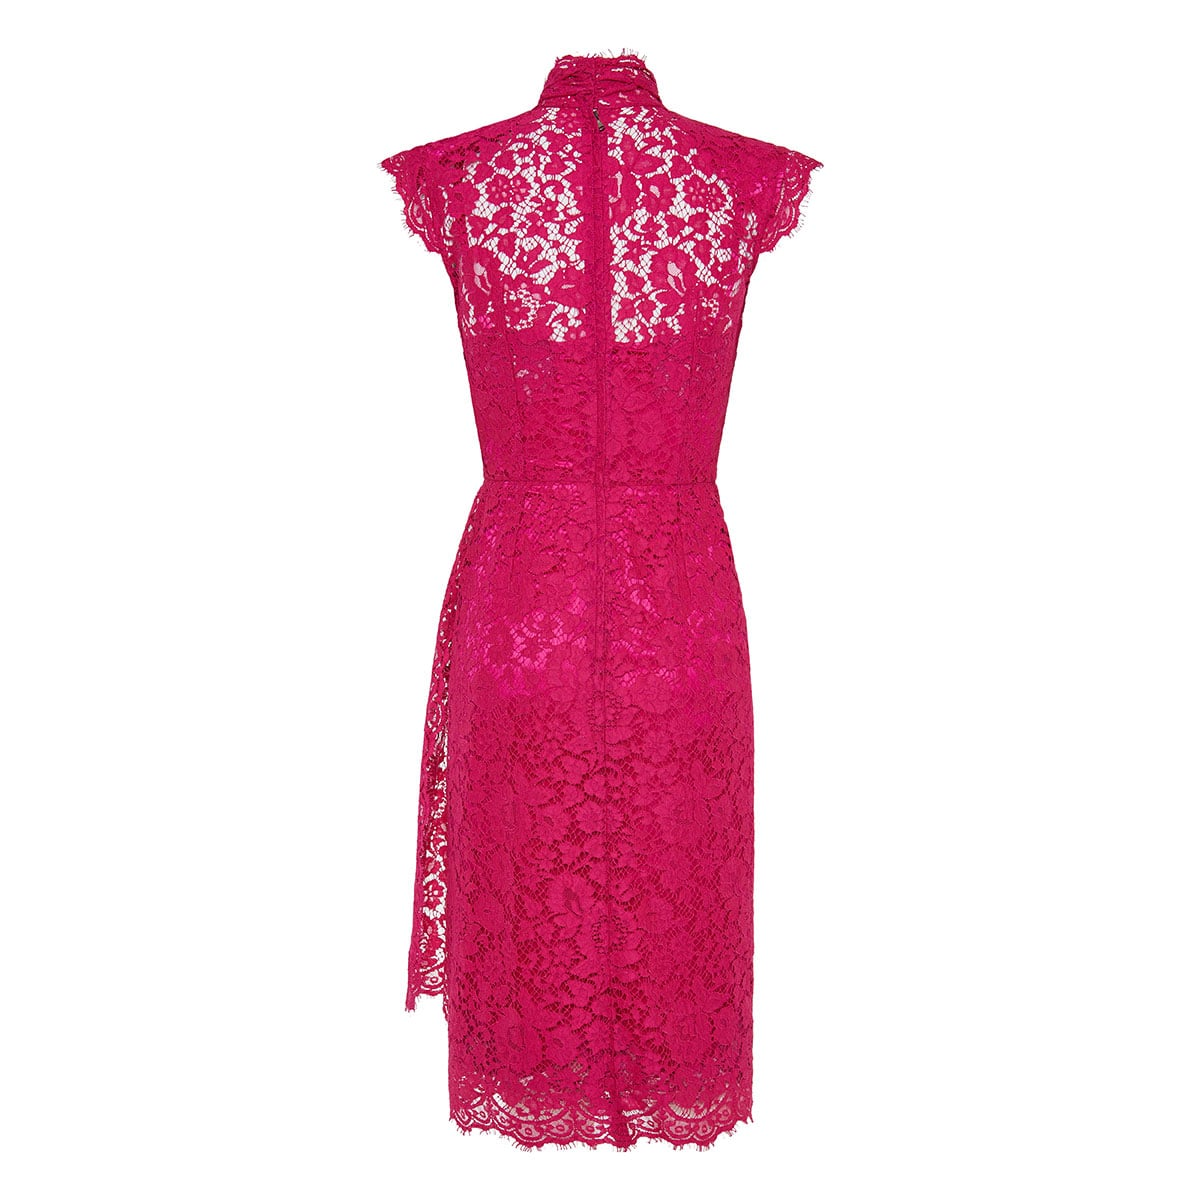 Bow-tie draped lace midi dress